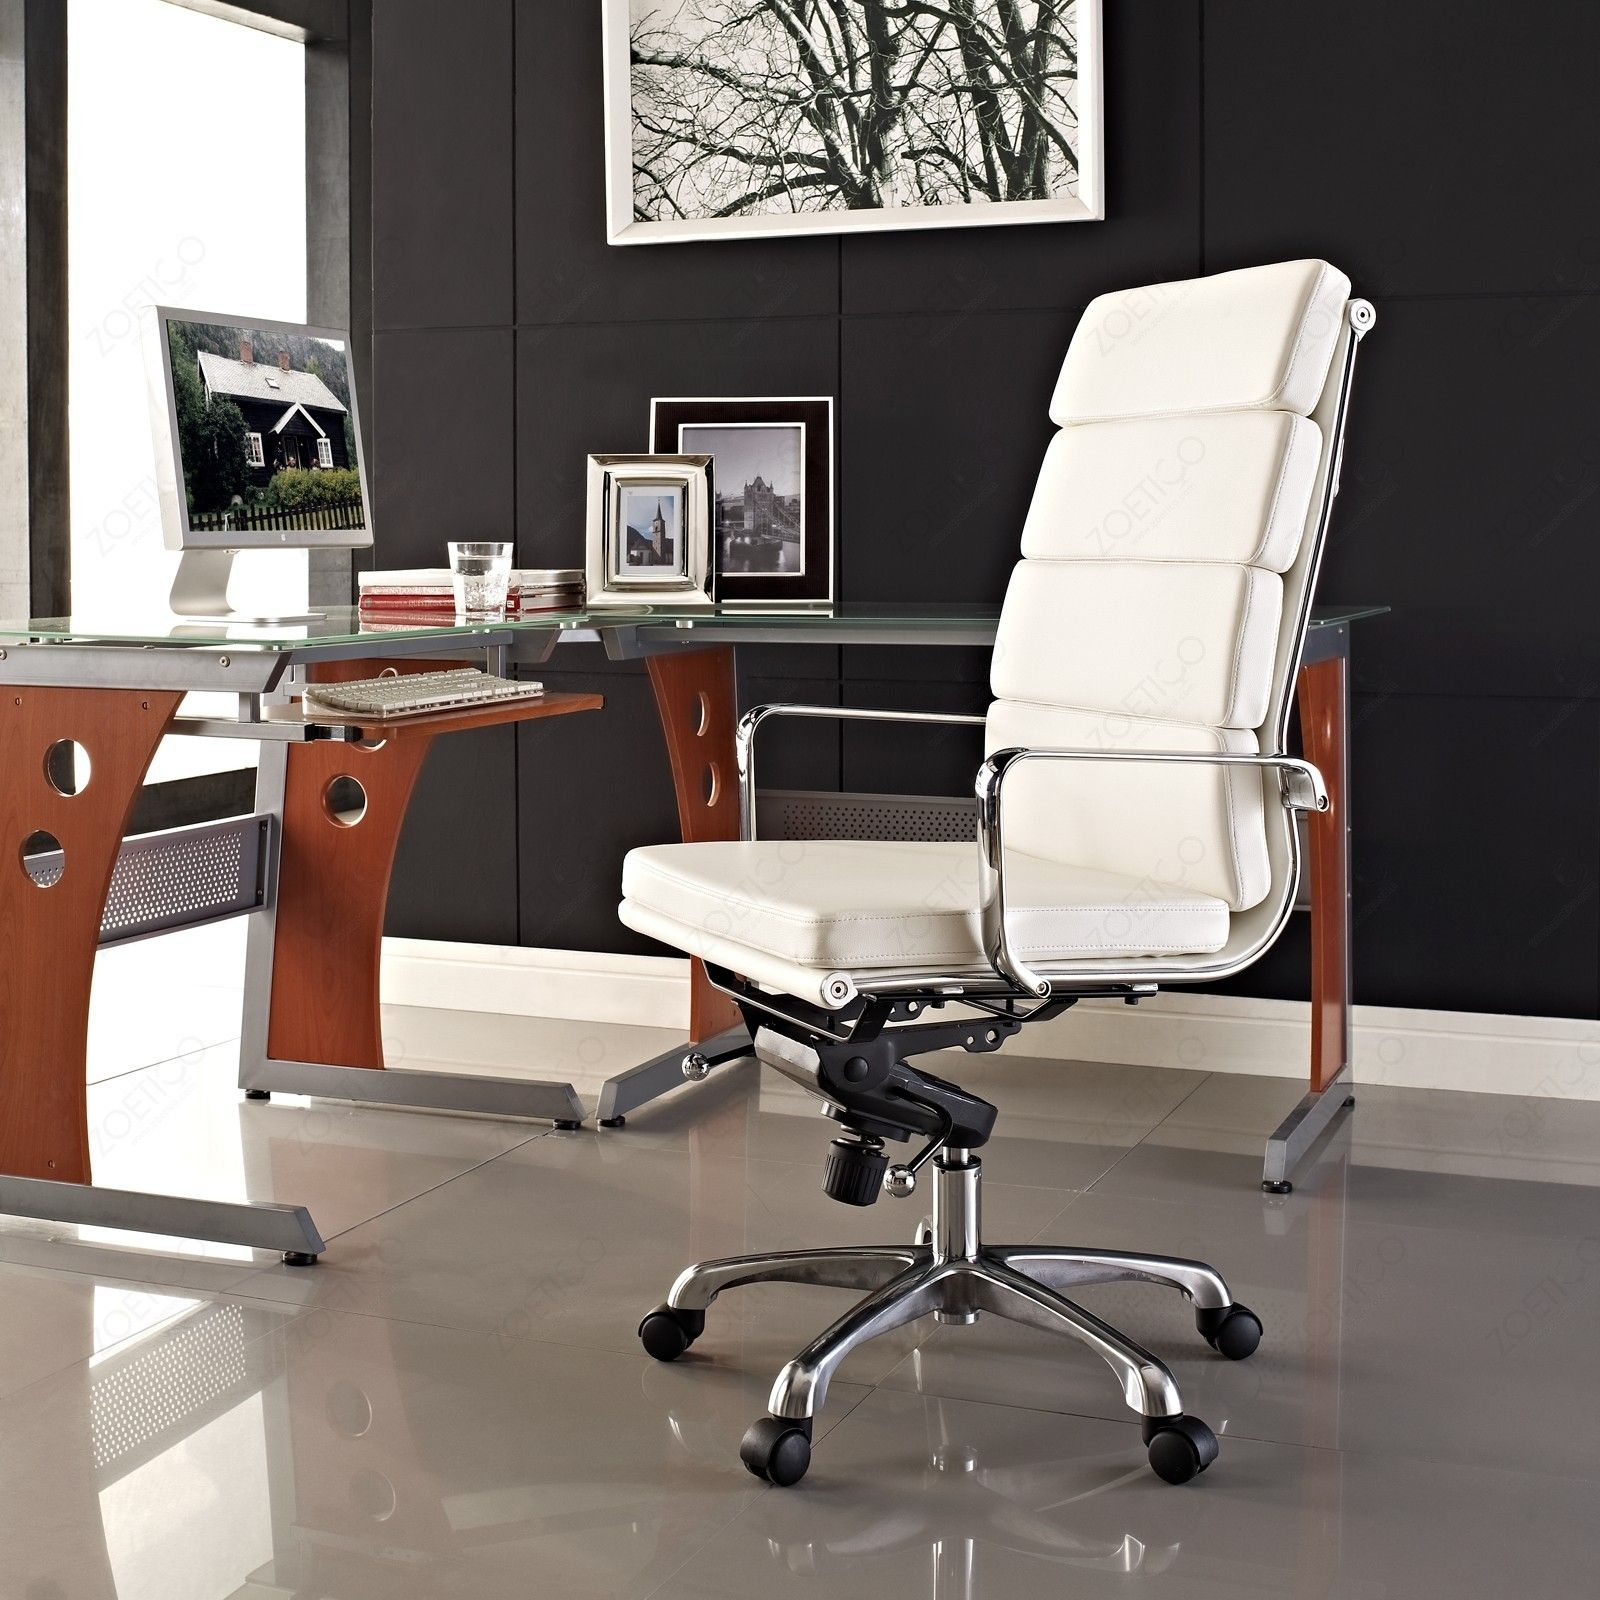 Office Workspace. Classy Office Ideas With Stylish White